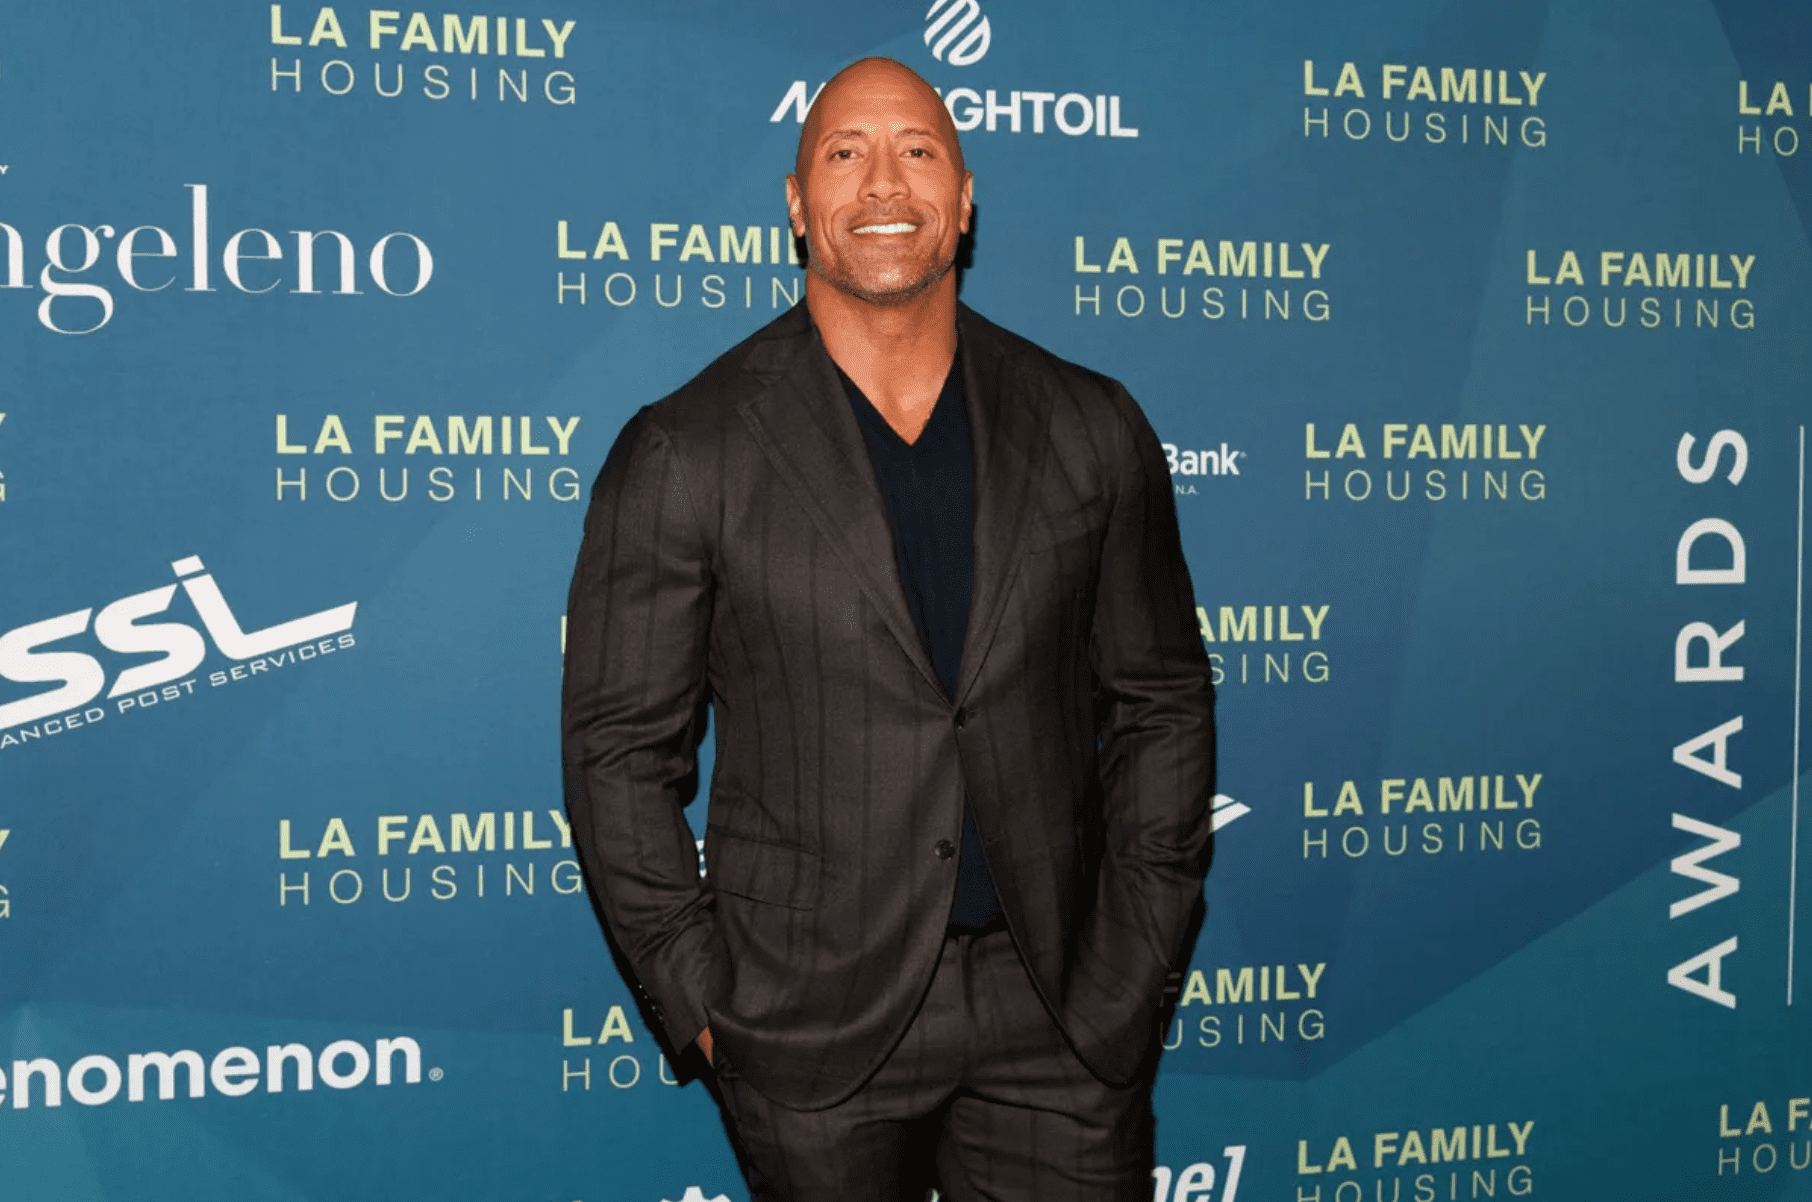 Dwayne Johnson at the LAFH Awards at The Lot in West Hollywood on April 5, 2018 | Source: Getty Images